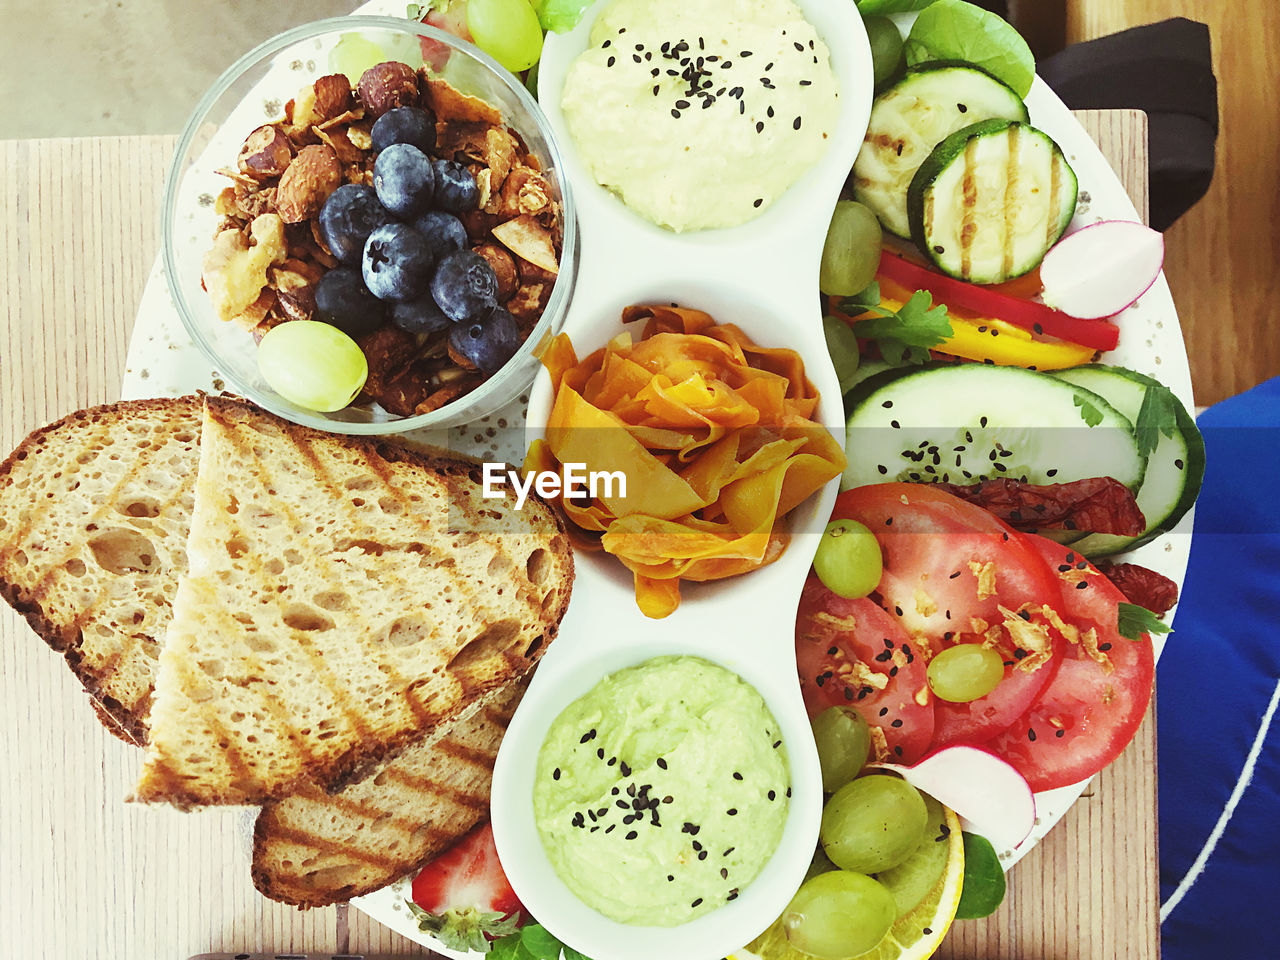 food, food and drink, freshness, healthy eating, ready-to-eat, wellbeing, fruit, meal, bread, bowl, vegetable, still life, plate, indoors, high angle view, table, no people, directly above, serving size, salad, breakfast, dip, snack, vegetarian food